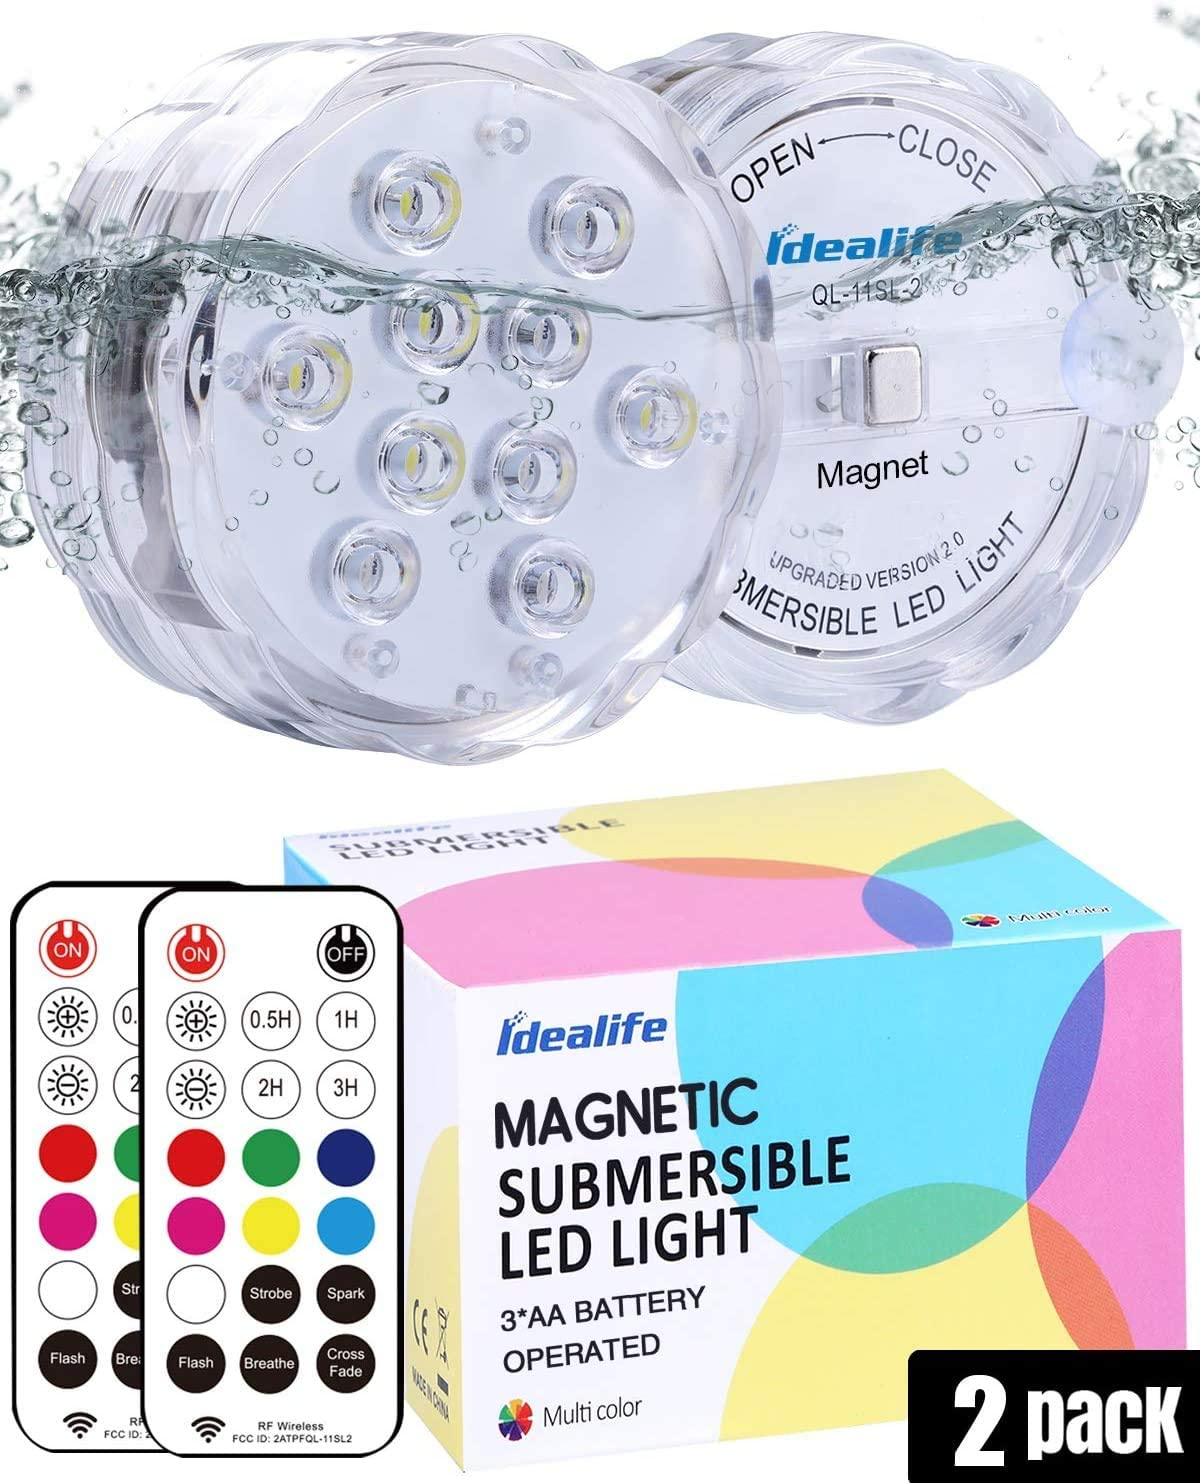 Idealife Submersible LED Lights, Swimming Pool Lights for Inground Pool with RF Remote Suction Cups Magnet AA Battery Light Waterproof for Hot Tub Above Ground Pool Fountain Bathtub Garden Décor 2pack